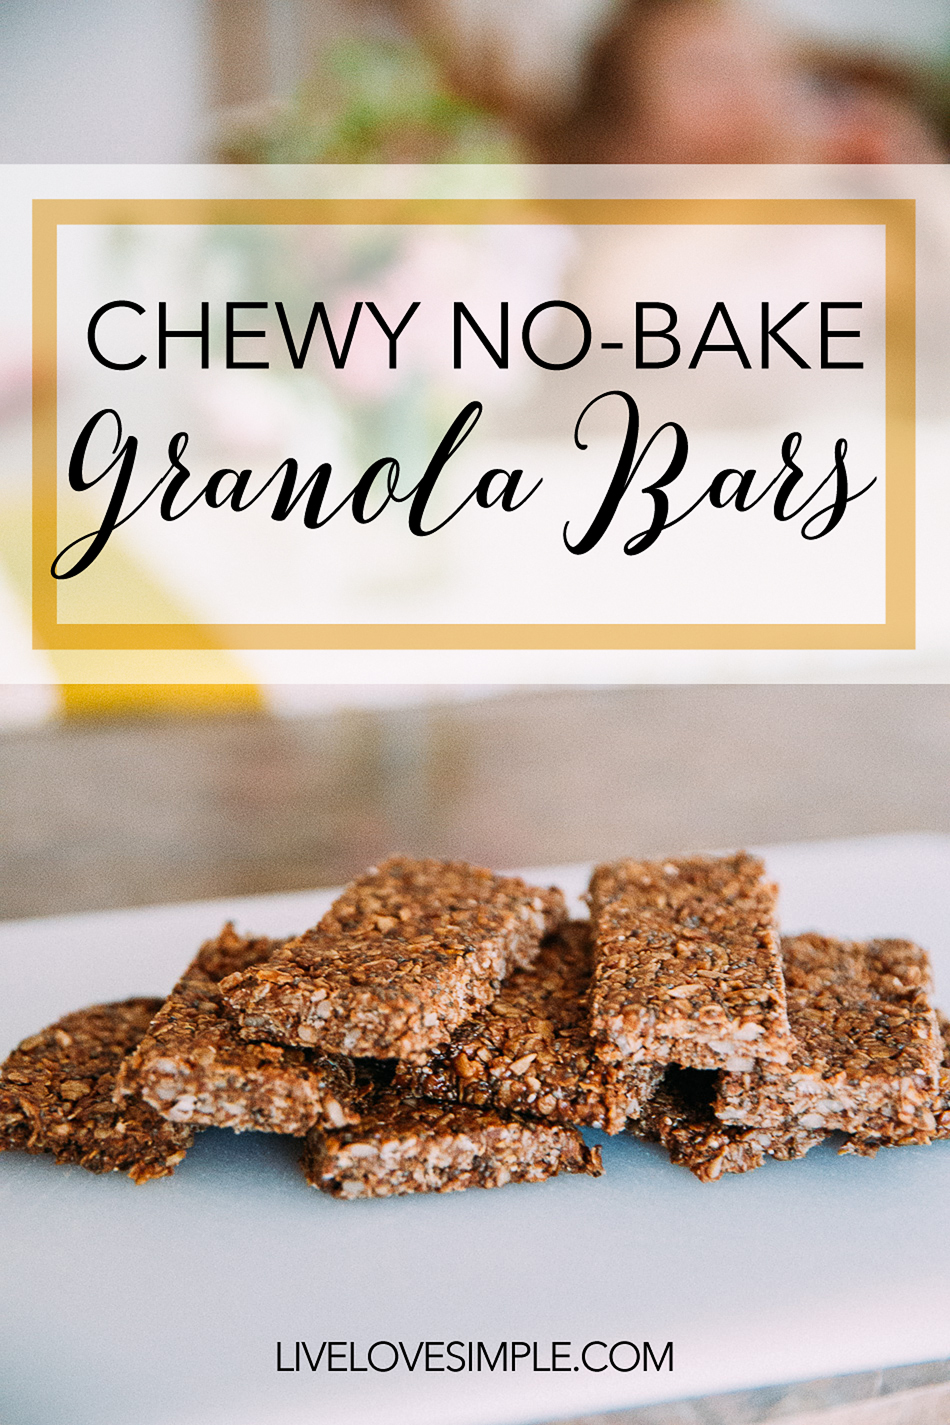 Chewy No-Bake Granola Bars // livelovesimple.com